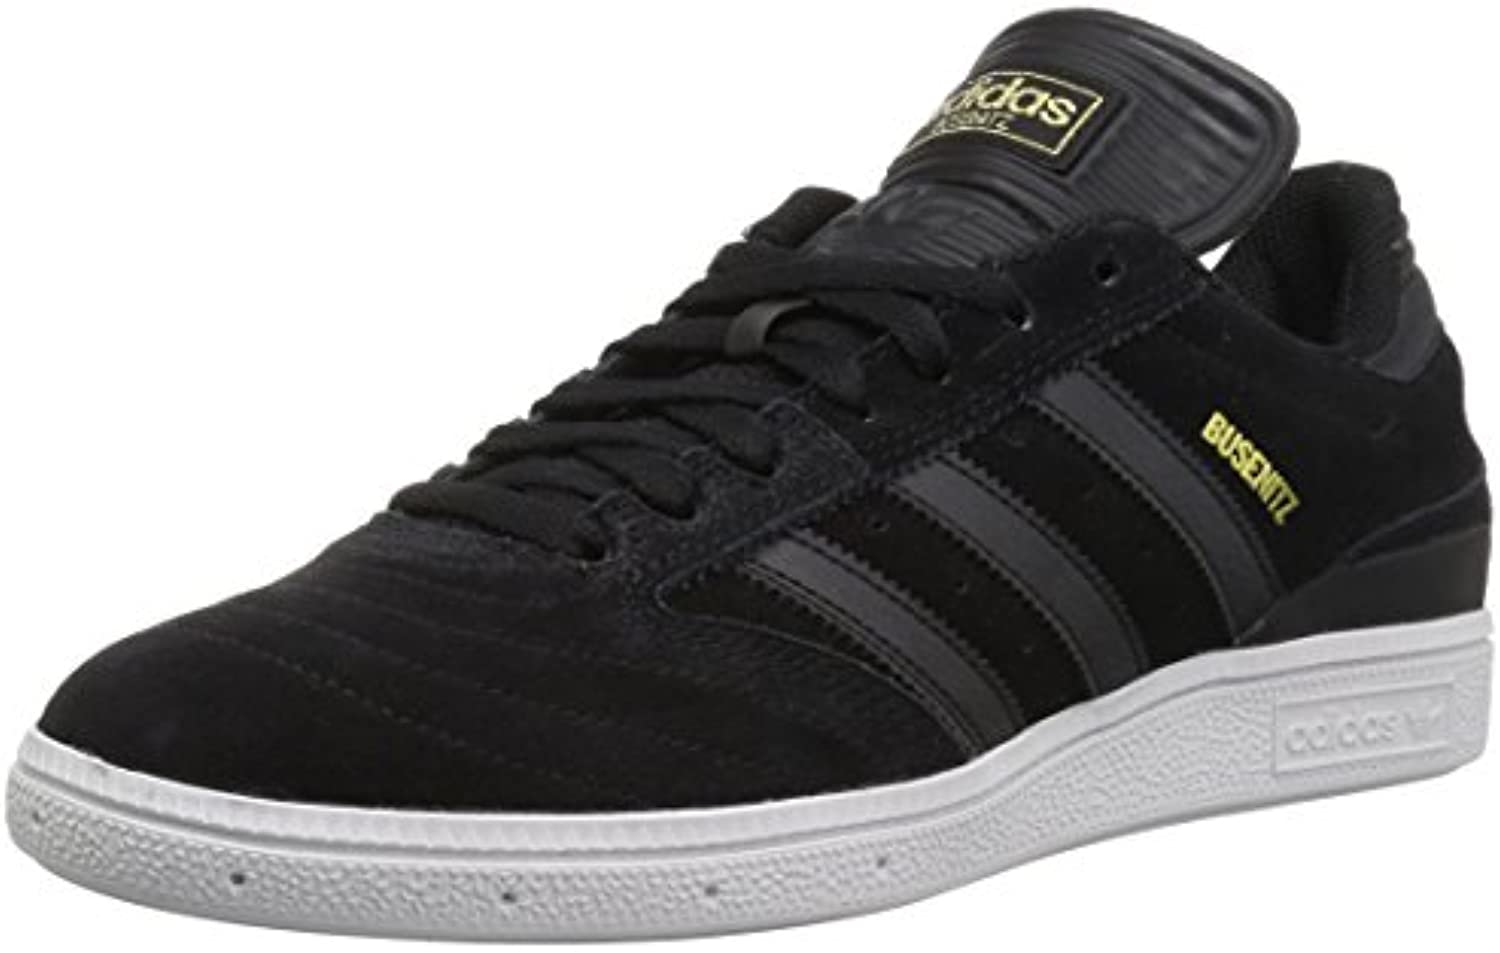 adidas Men's Busenitz Core Black/Core Black/White Skate Skate Skate Shoe 13 Men US 746850